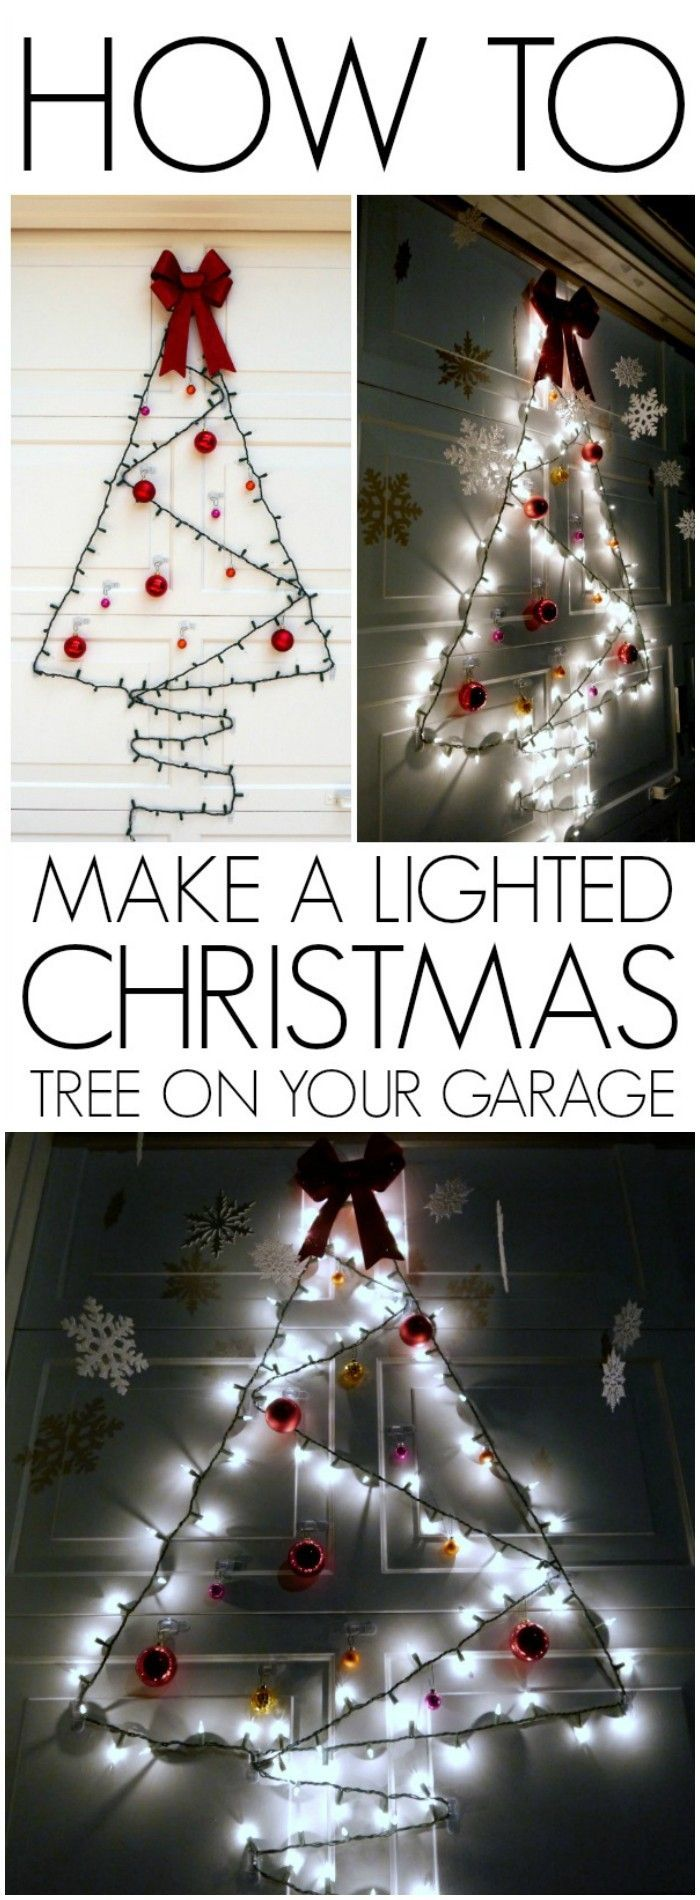 Outdoor garage decorations  I have a gallery of  cheap and easy to create DIY outdoor